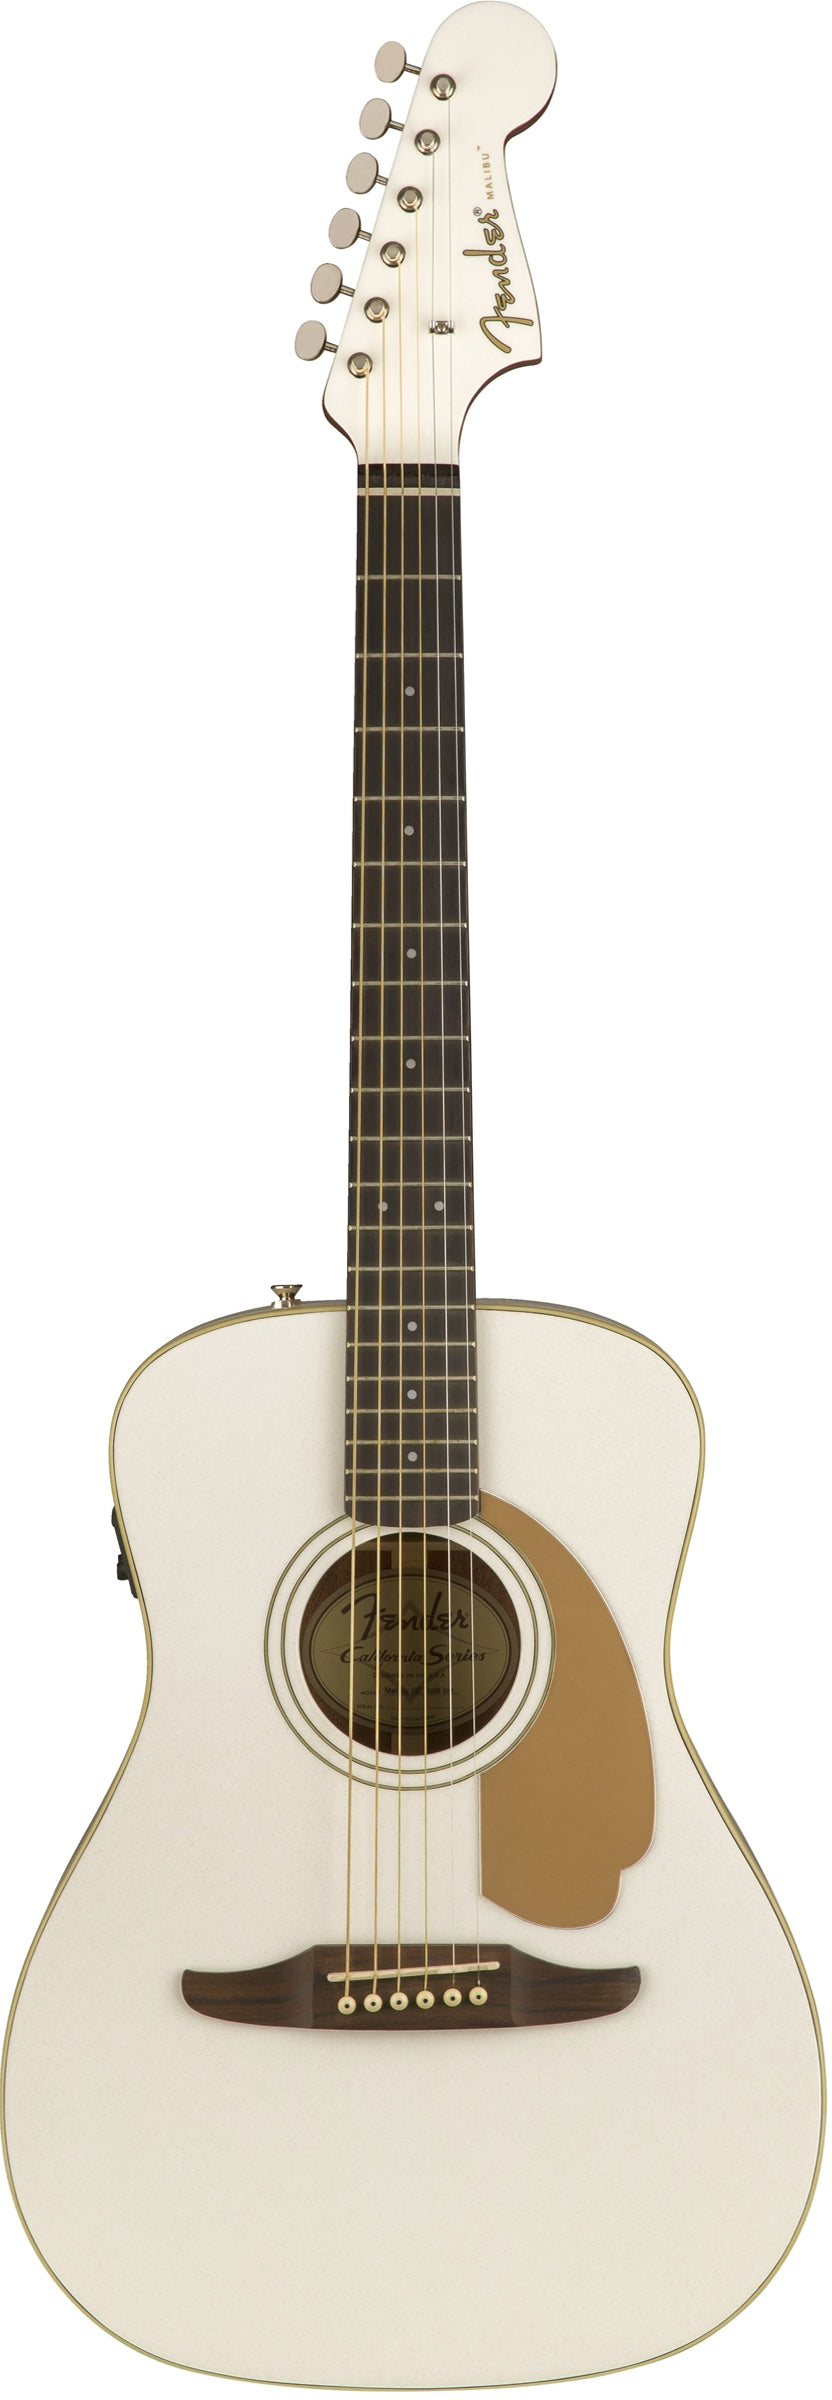 Fender Malibu Player Series Acoustic-Electric